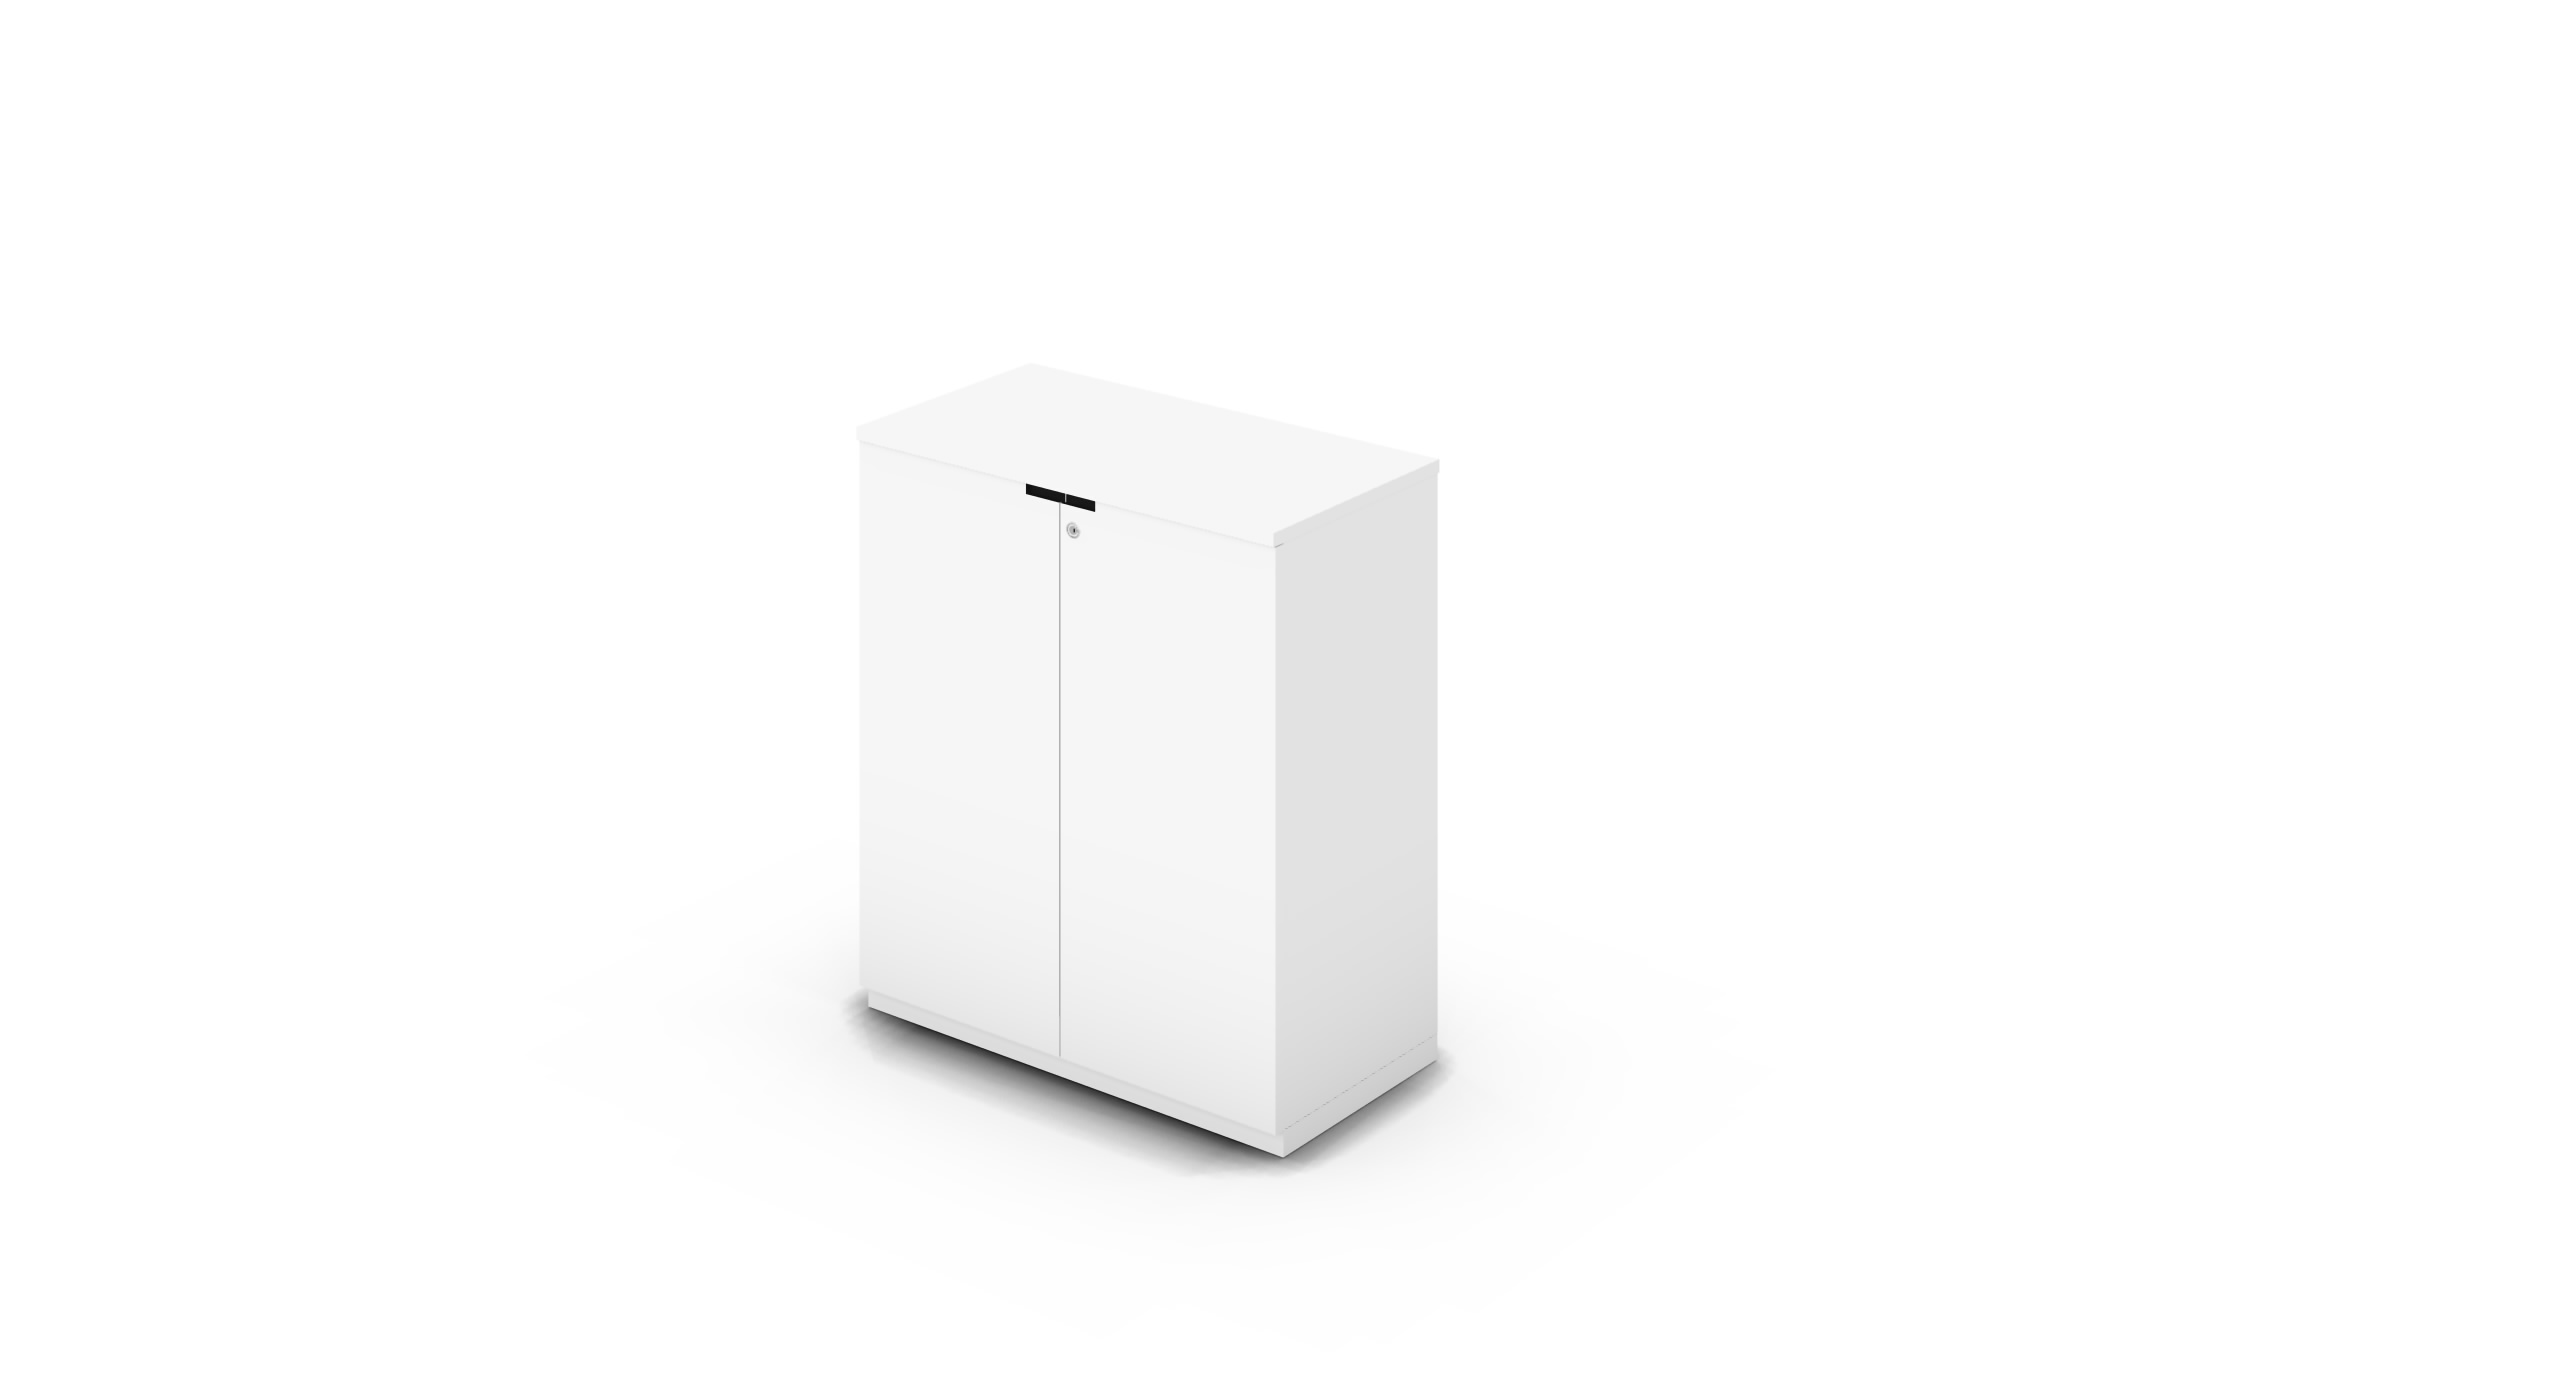 Cabinet_900x450x1125_HD_White_CutOut_WithCylinder